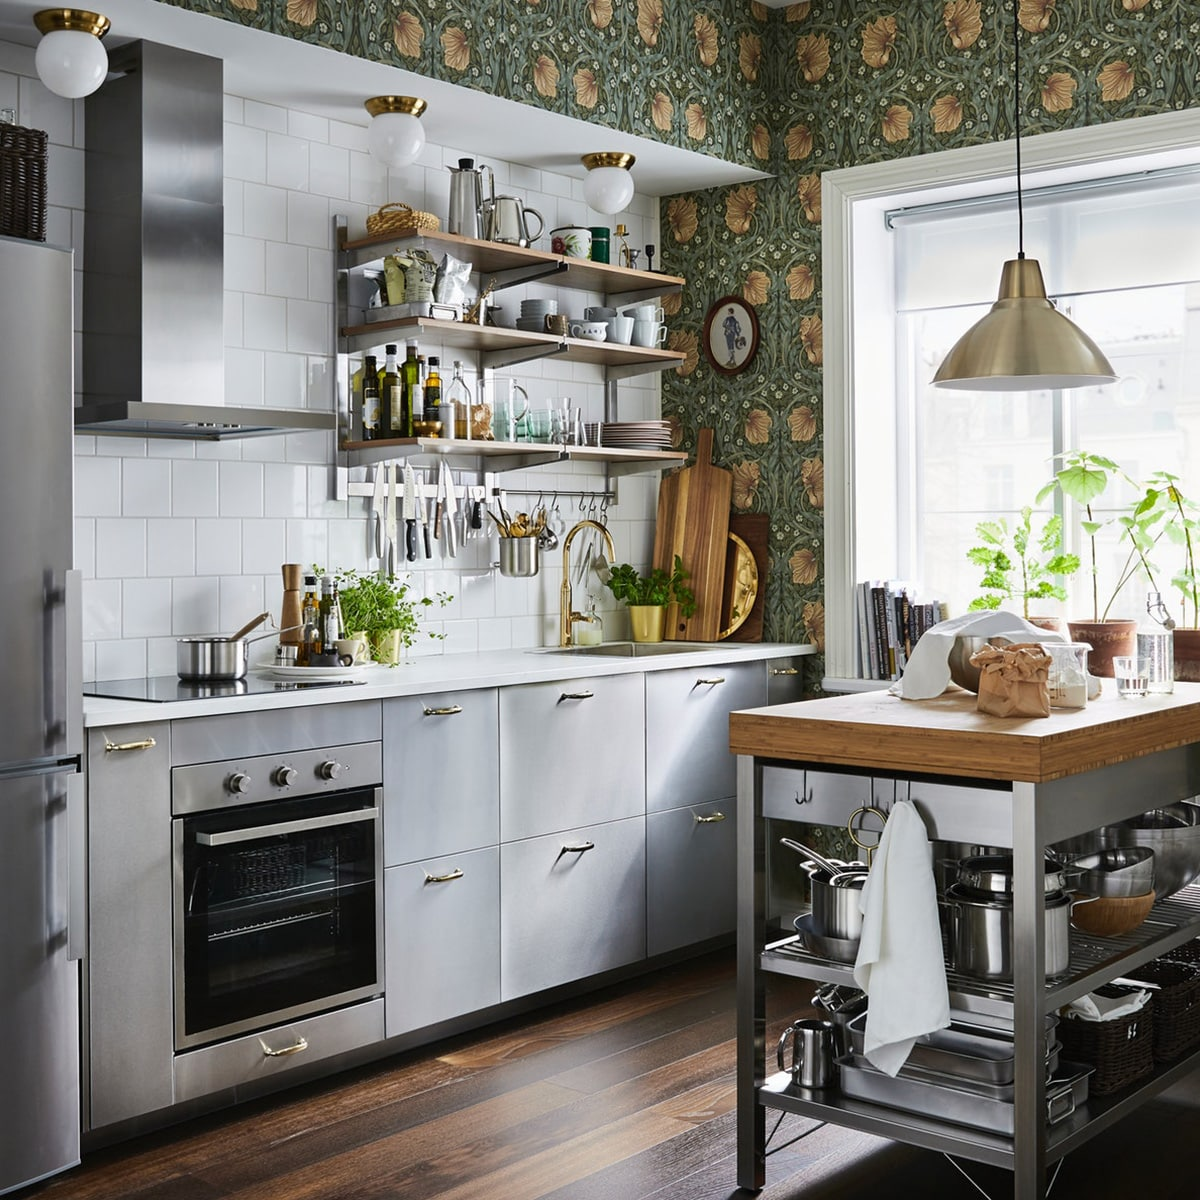 Come Decorare Una Cucina Rustica kitchen gallery - ikea switzerland